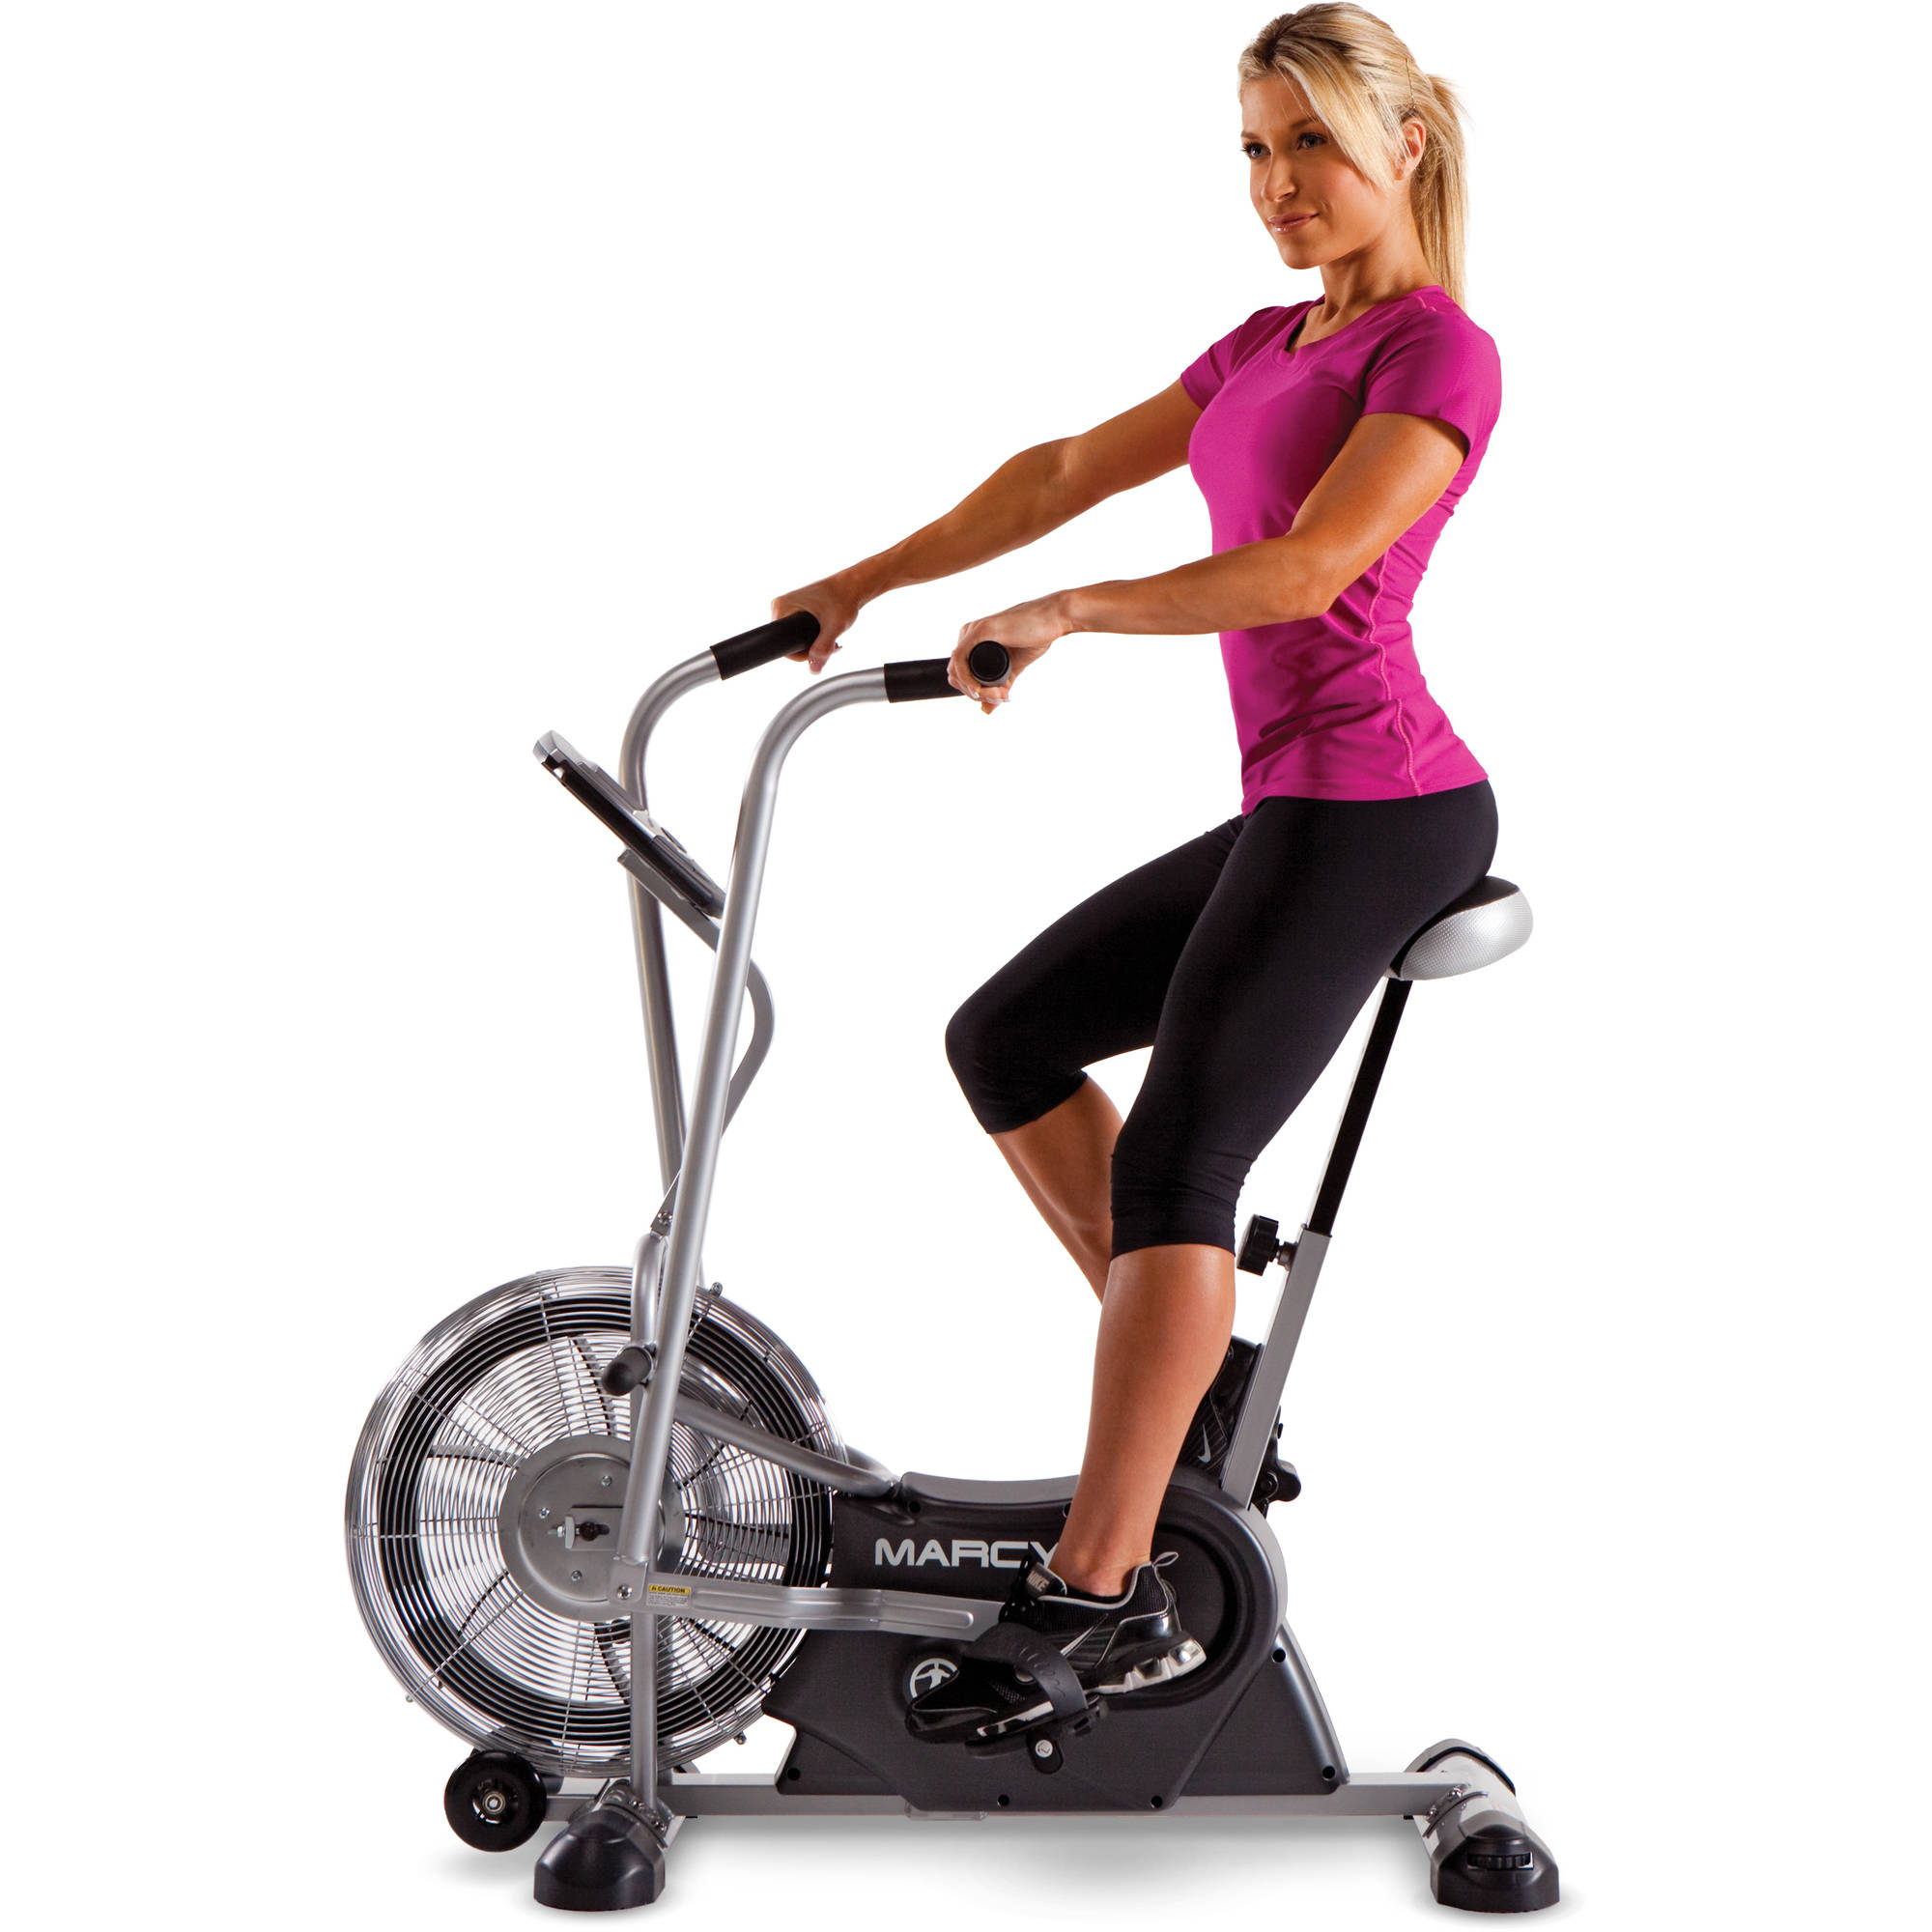 Marcy Exercise Fan Bike: AIR-1